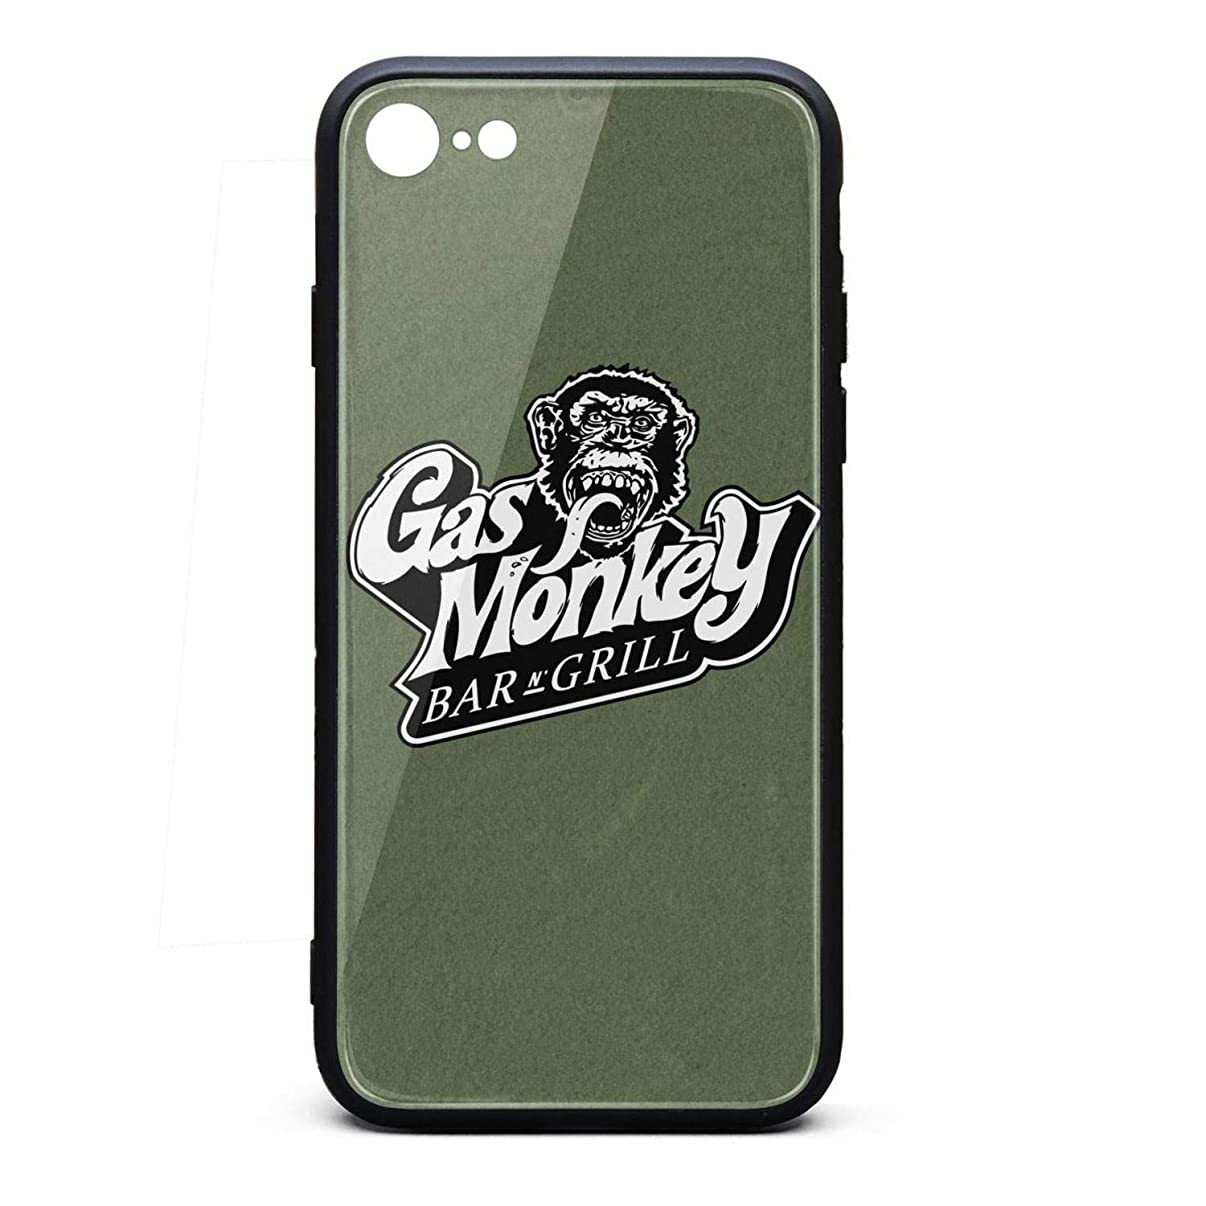 Gas-Monkey-Bar-N'-Grill- Slim Skid-Proof Protective Cushion Basic Phone Case for iphone6s Plus